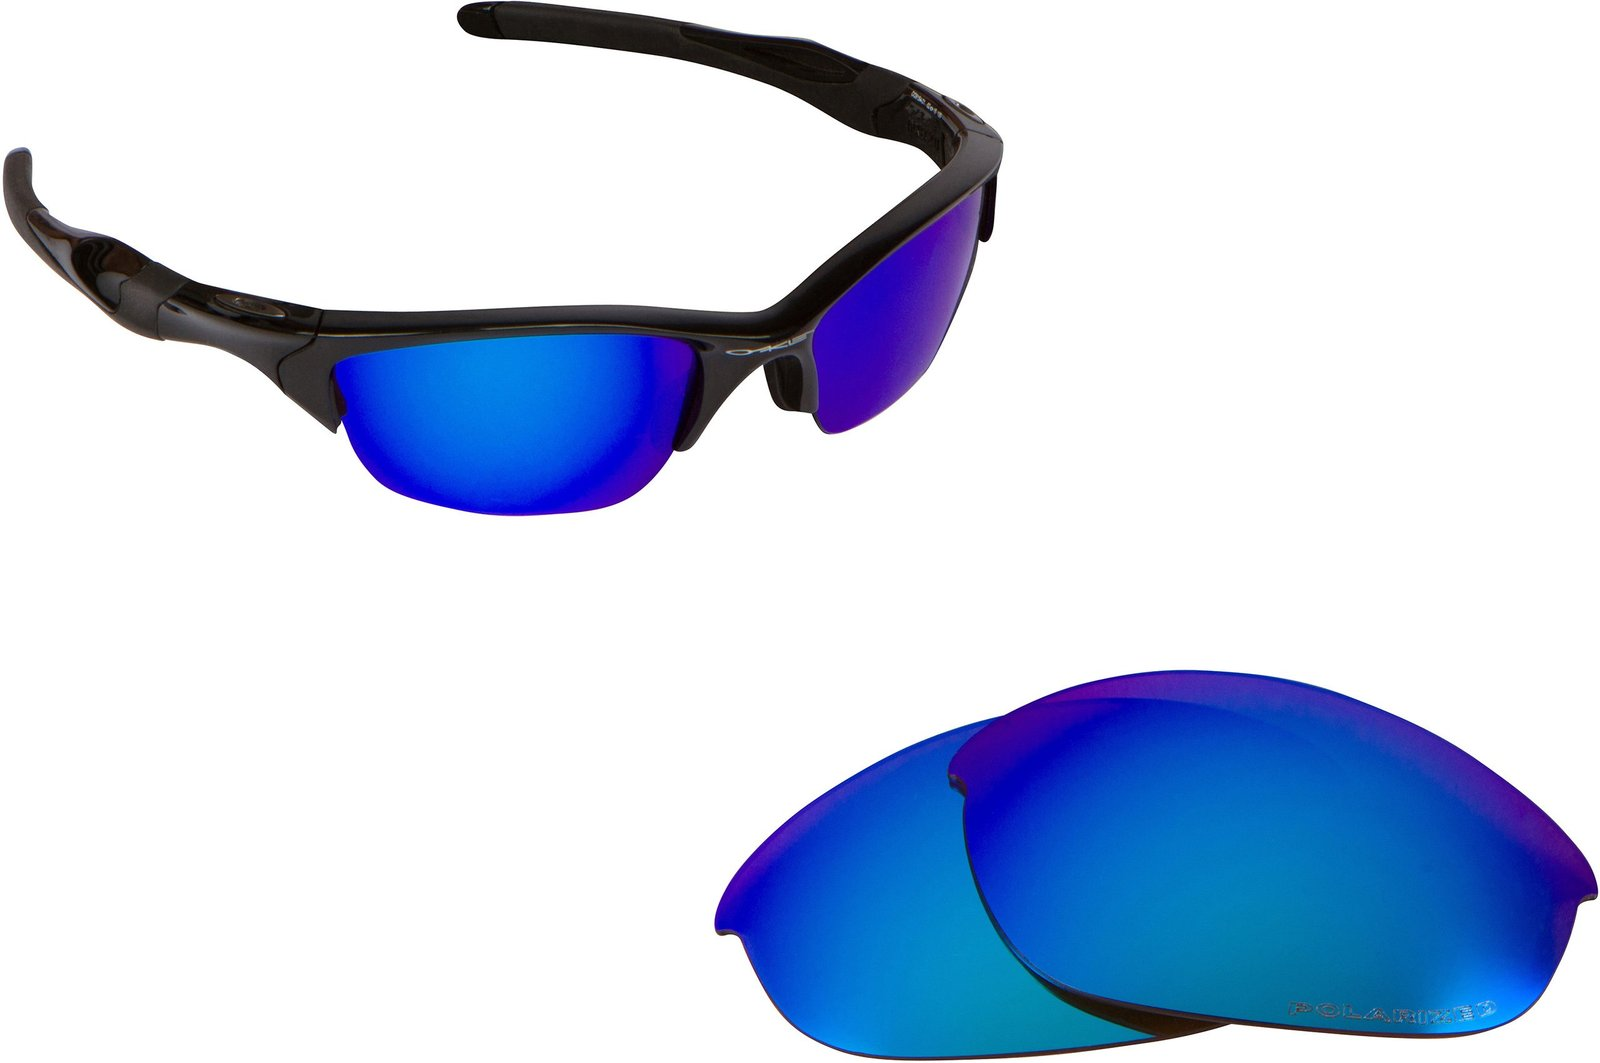 ba94203da32 71uegbsayml. 71uegbsayml. Previous. New SEEK Replacement Lenses Oakley HALF  JACKET 2.0 Asian Fit - Blue Mirror